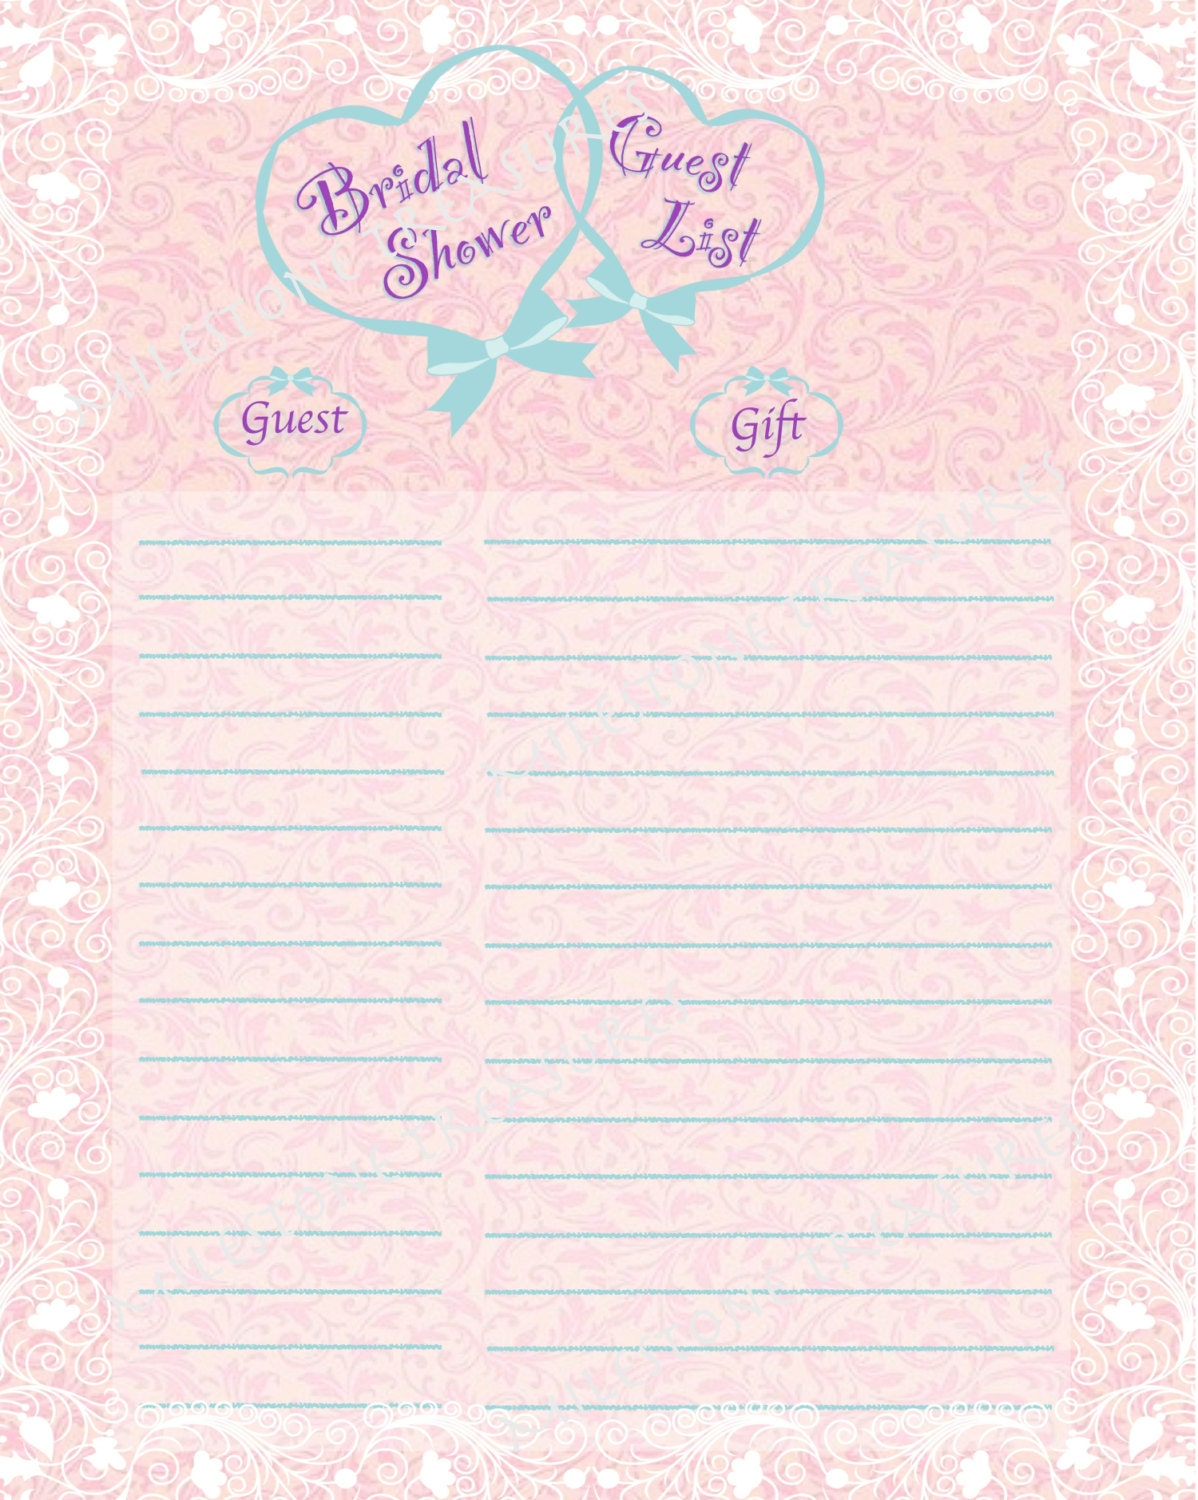 Wedding Gift List For Guests : Bridal Shower Guest & Gift List English Tea Damask Pink